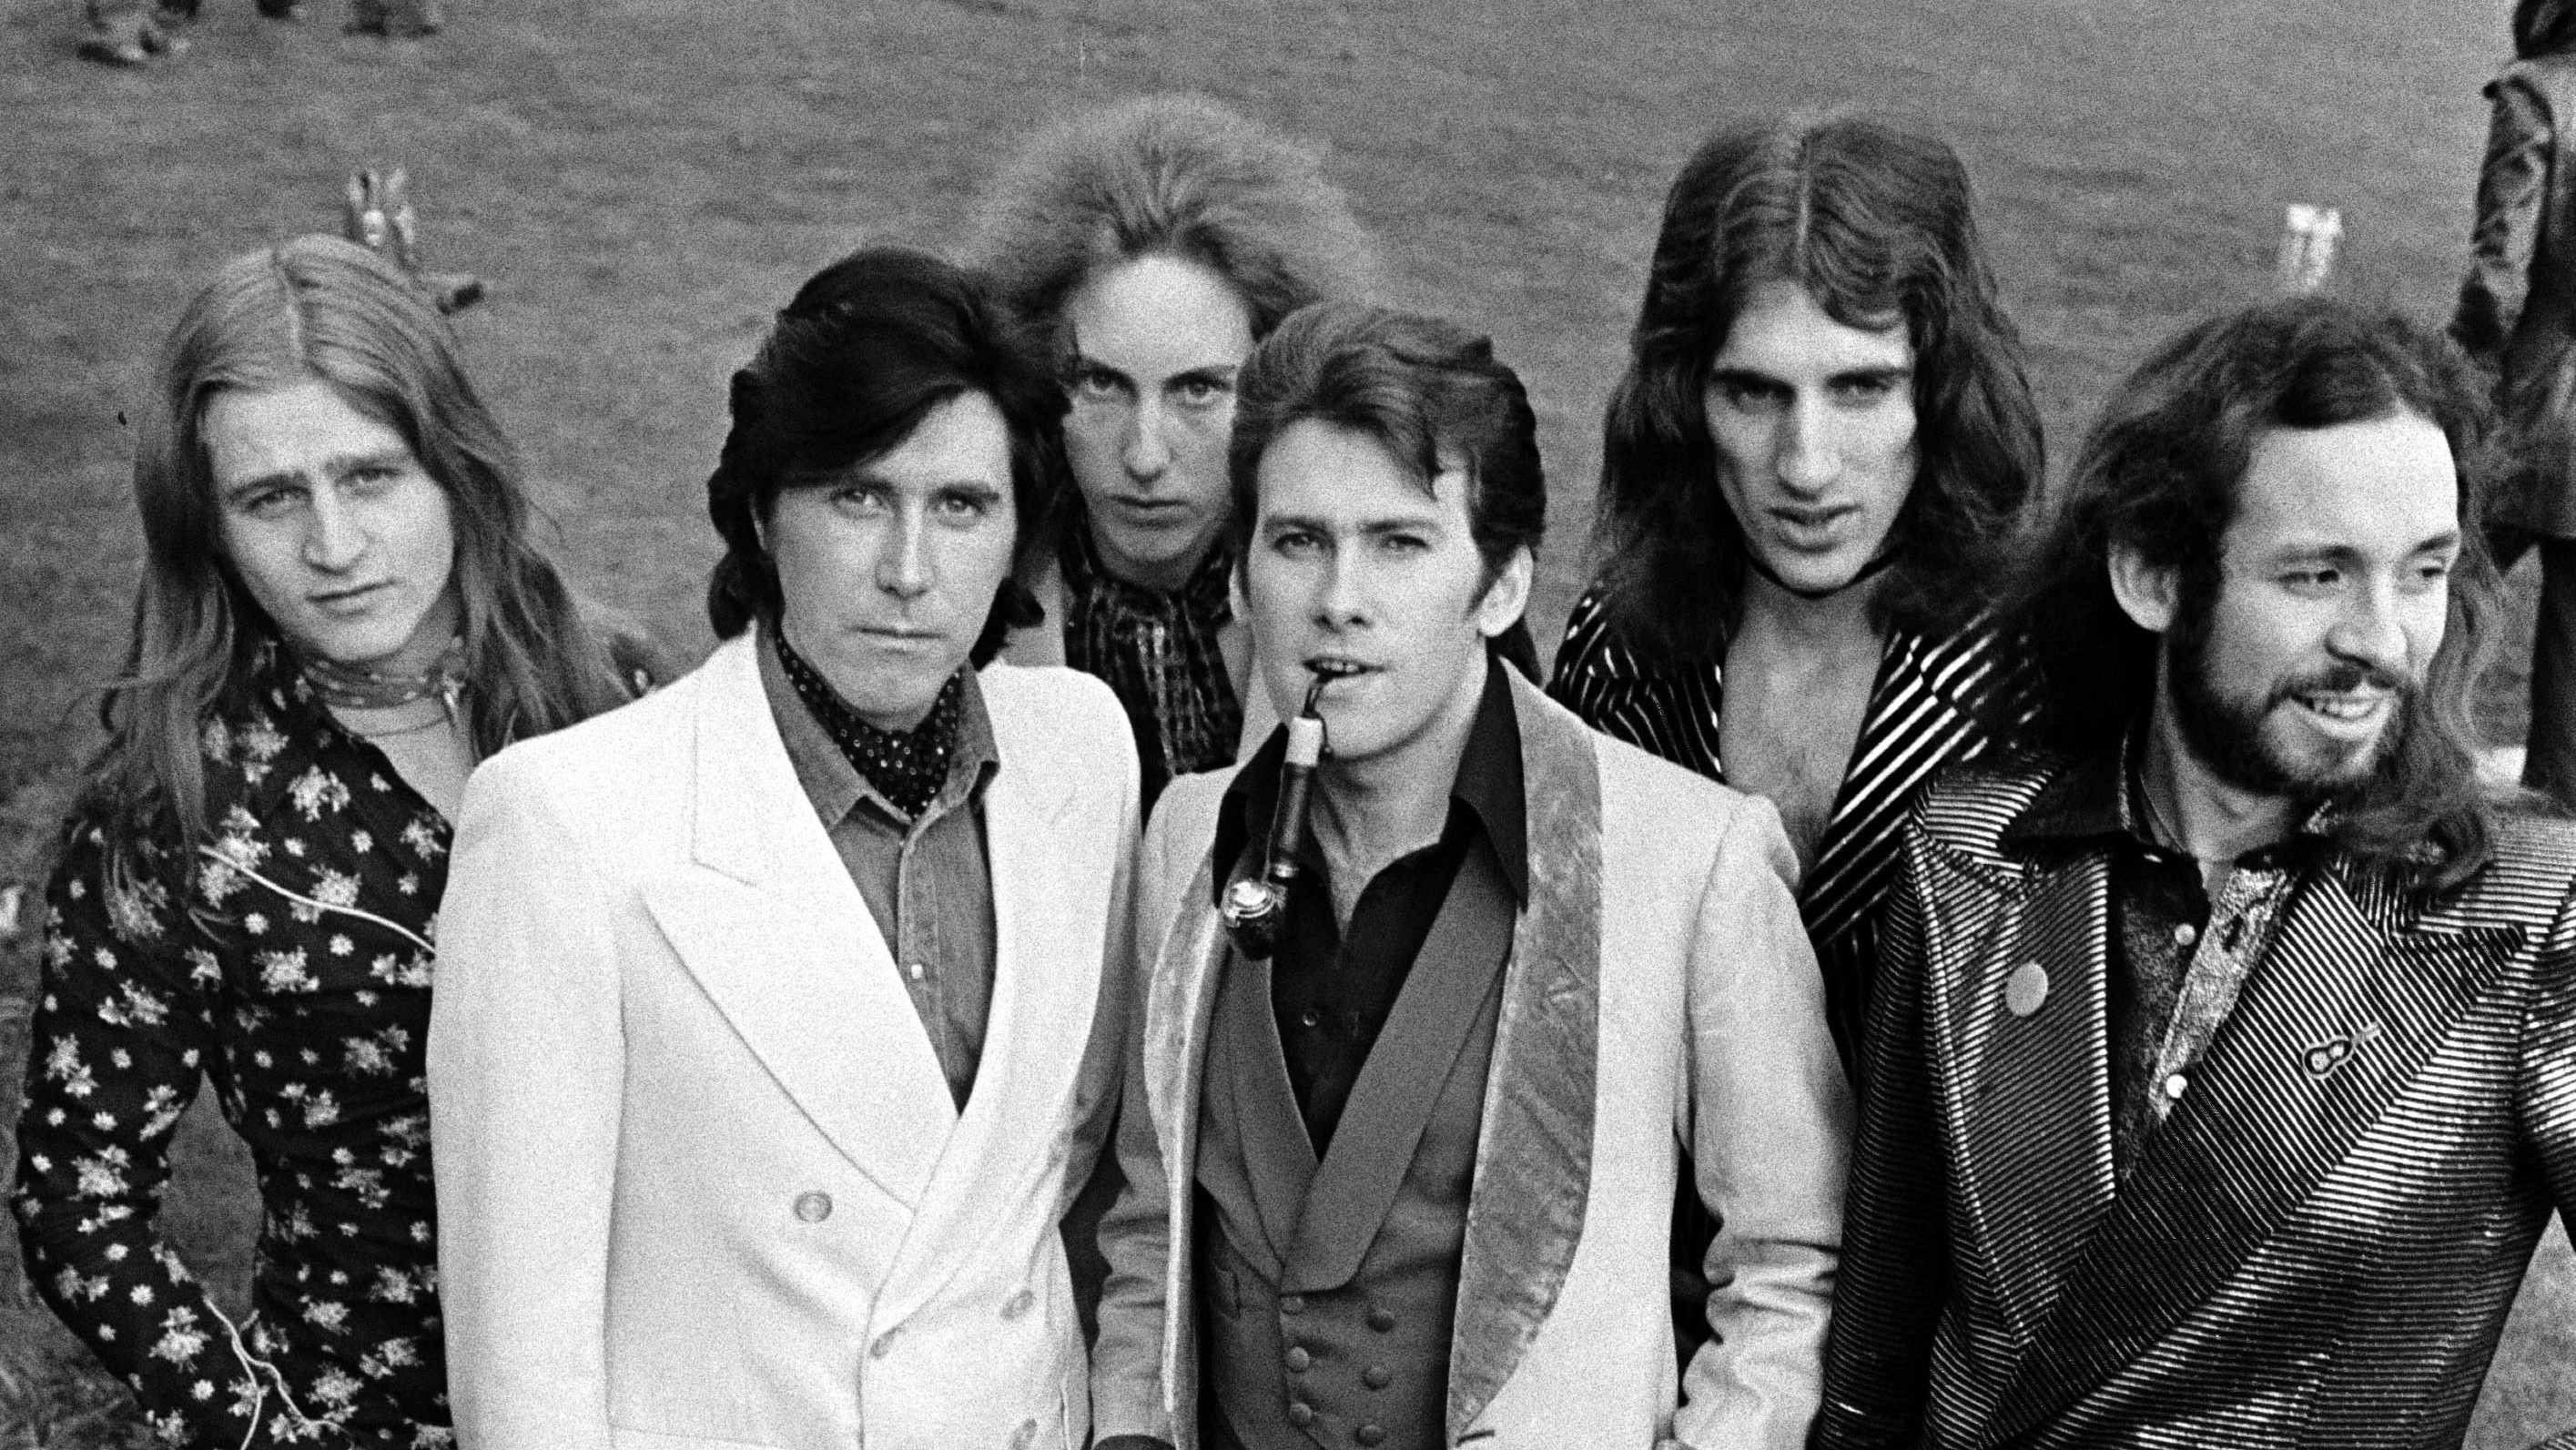 L-R Paul Thompson, Bryan Ferry, Eddie Jobson, Andy Mackay, Sal Maida and Phil Manzanera of Roxy Music pose for a group portra